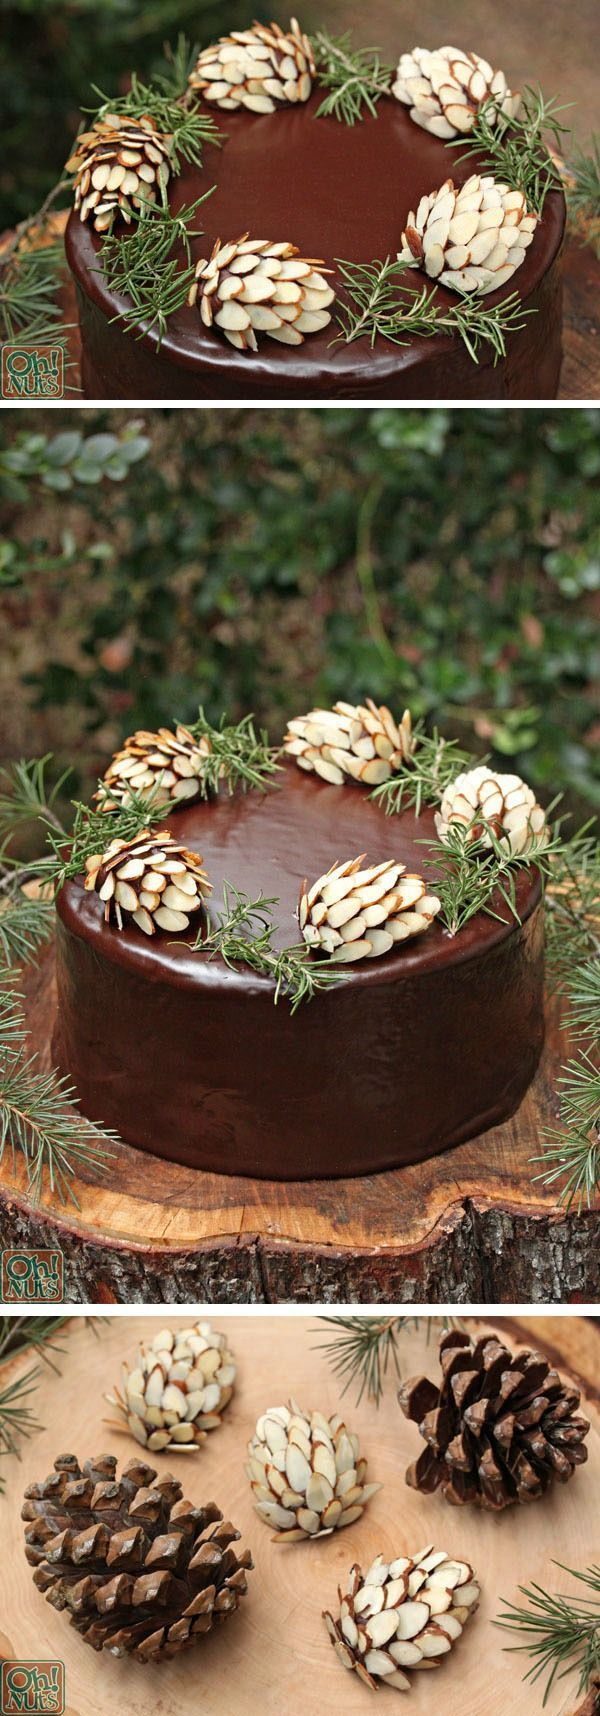 How to Make Chocolate Pine Cones - Made with Chocolate Fudge and Almonds -Beautiful!